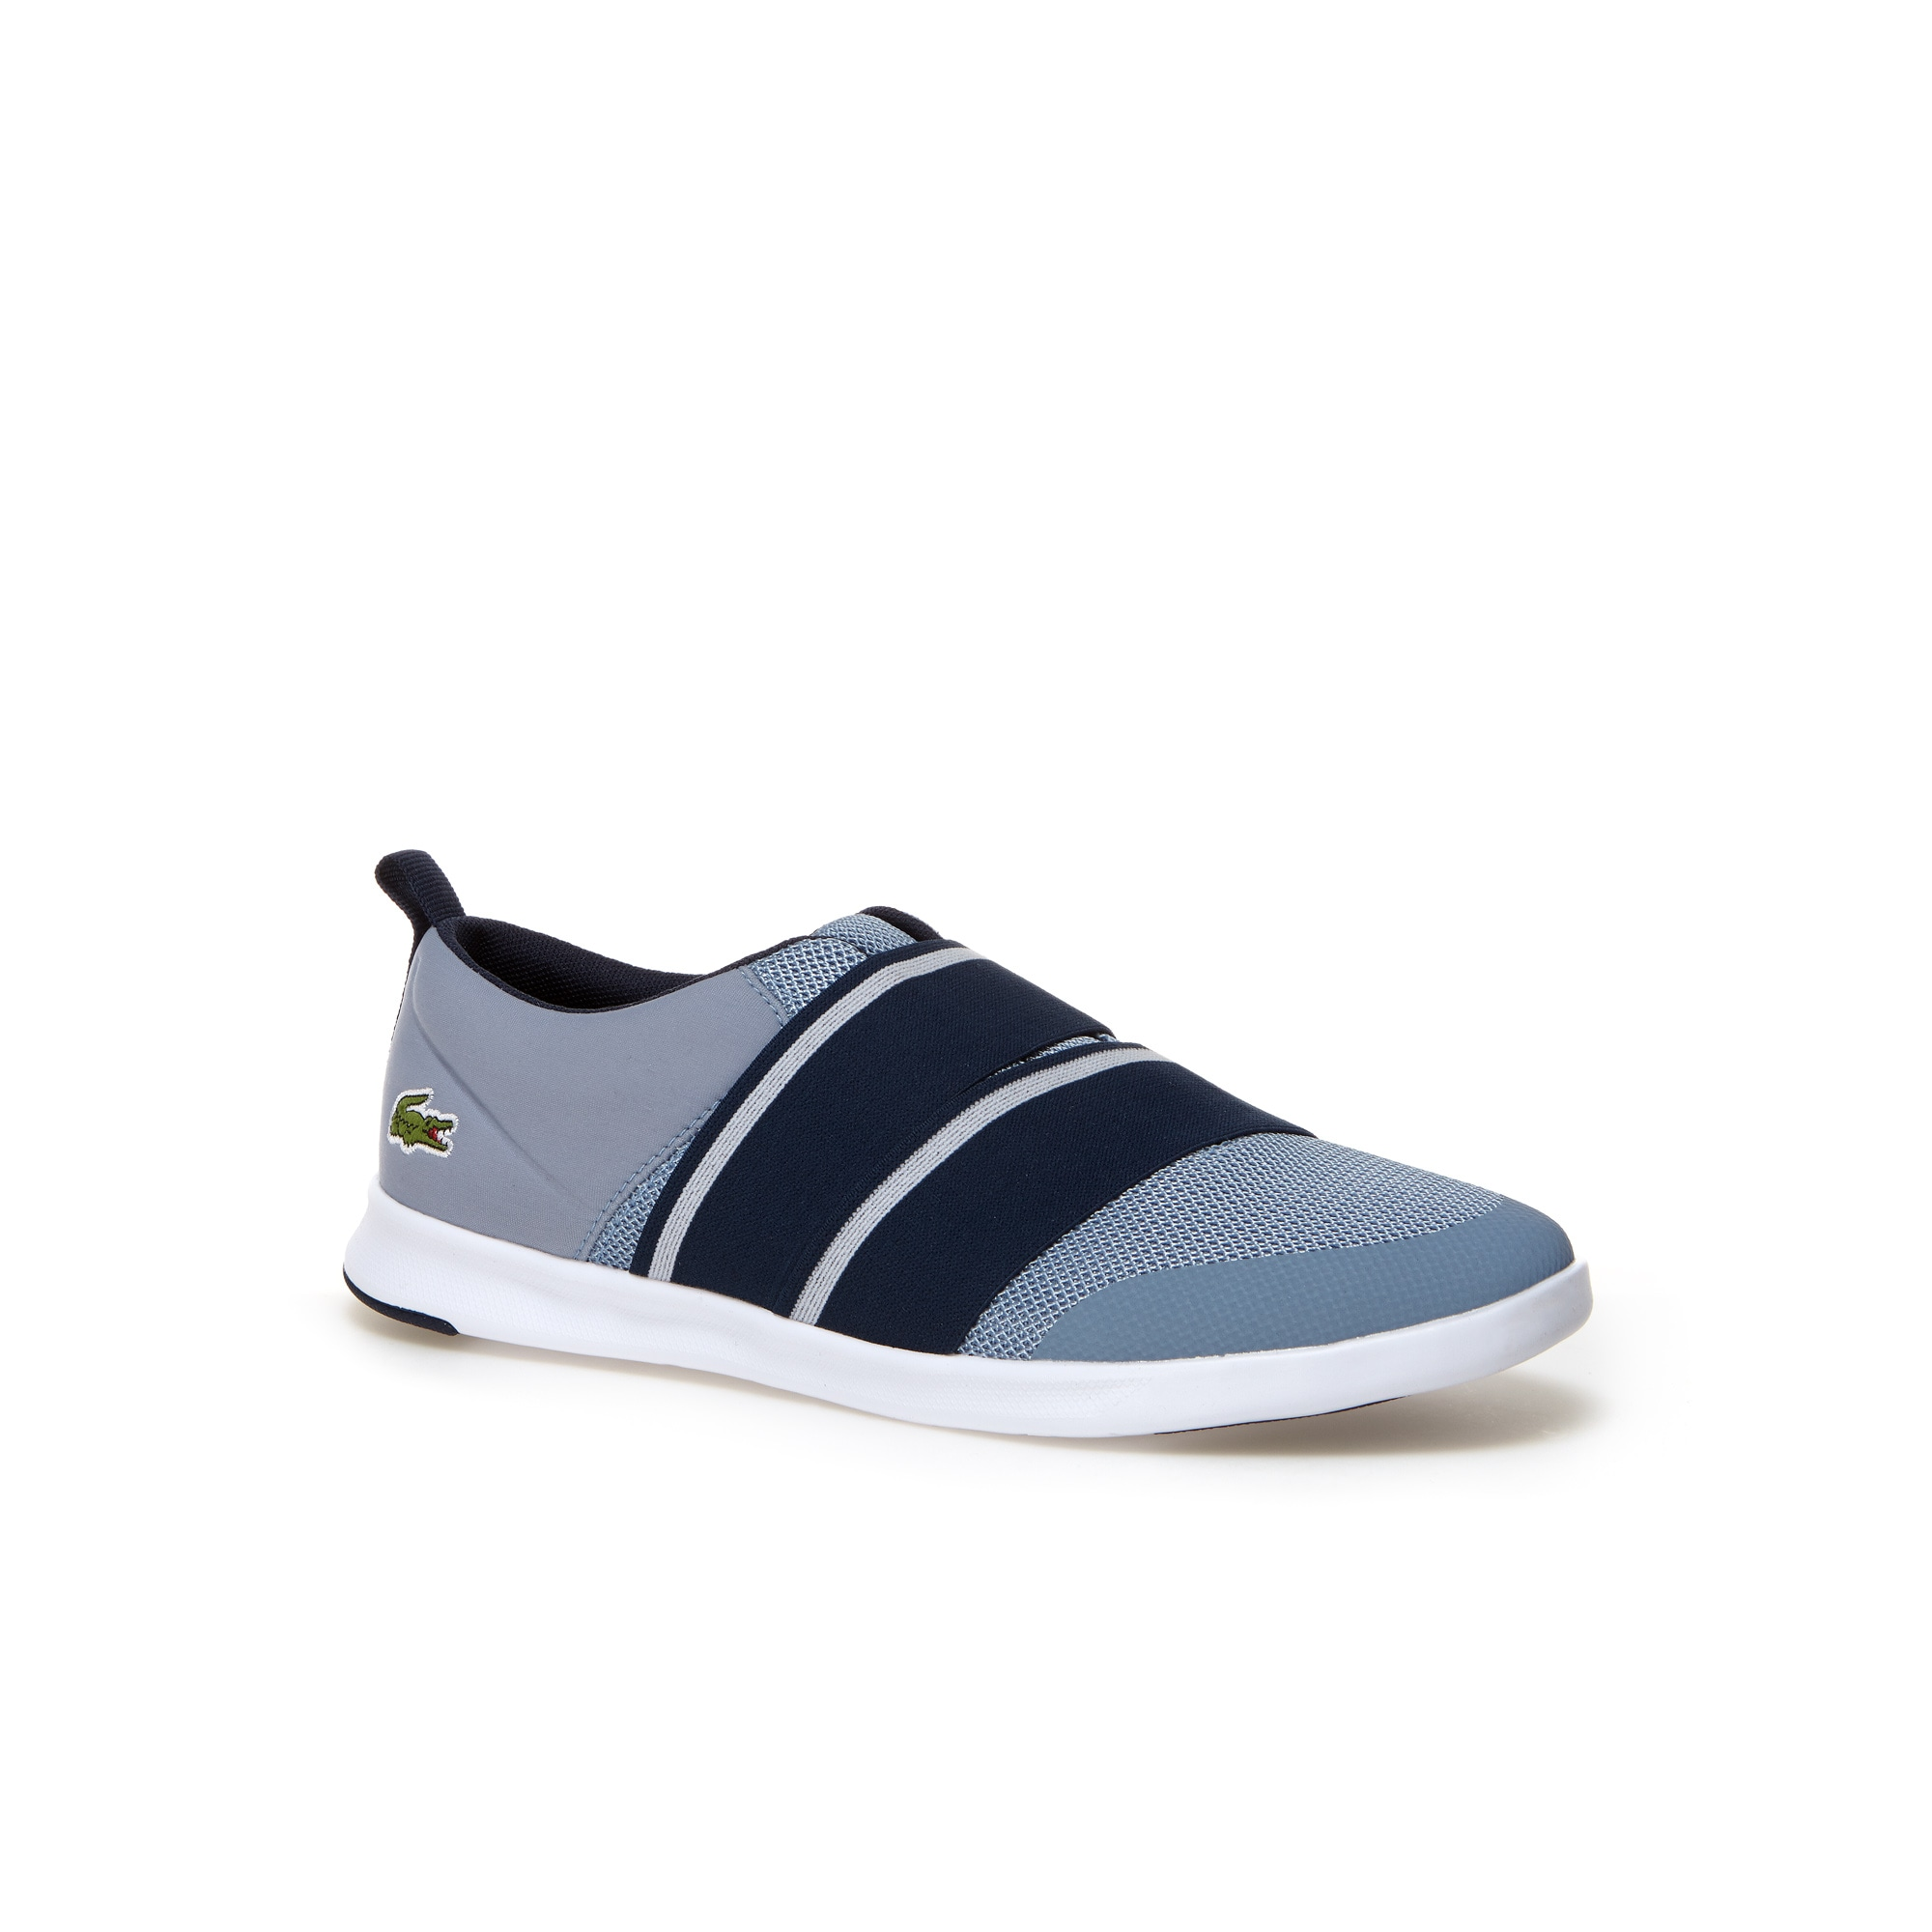 Women's Avenir Slip Leather Slip-ons